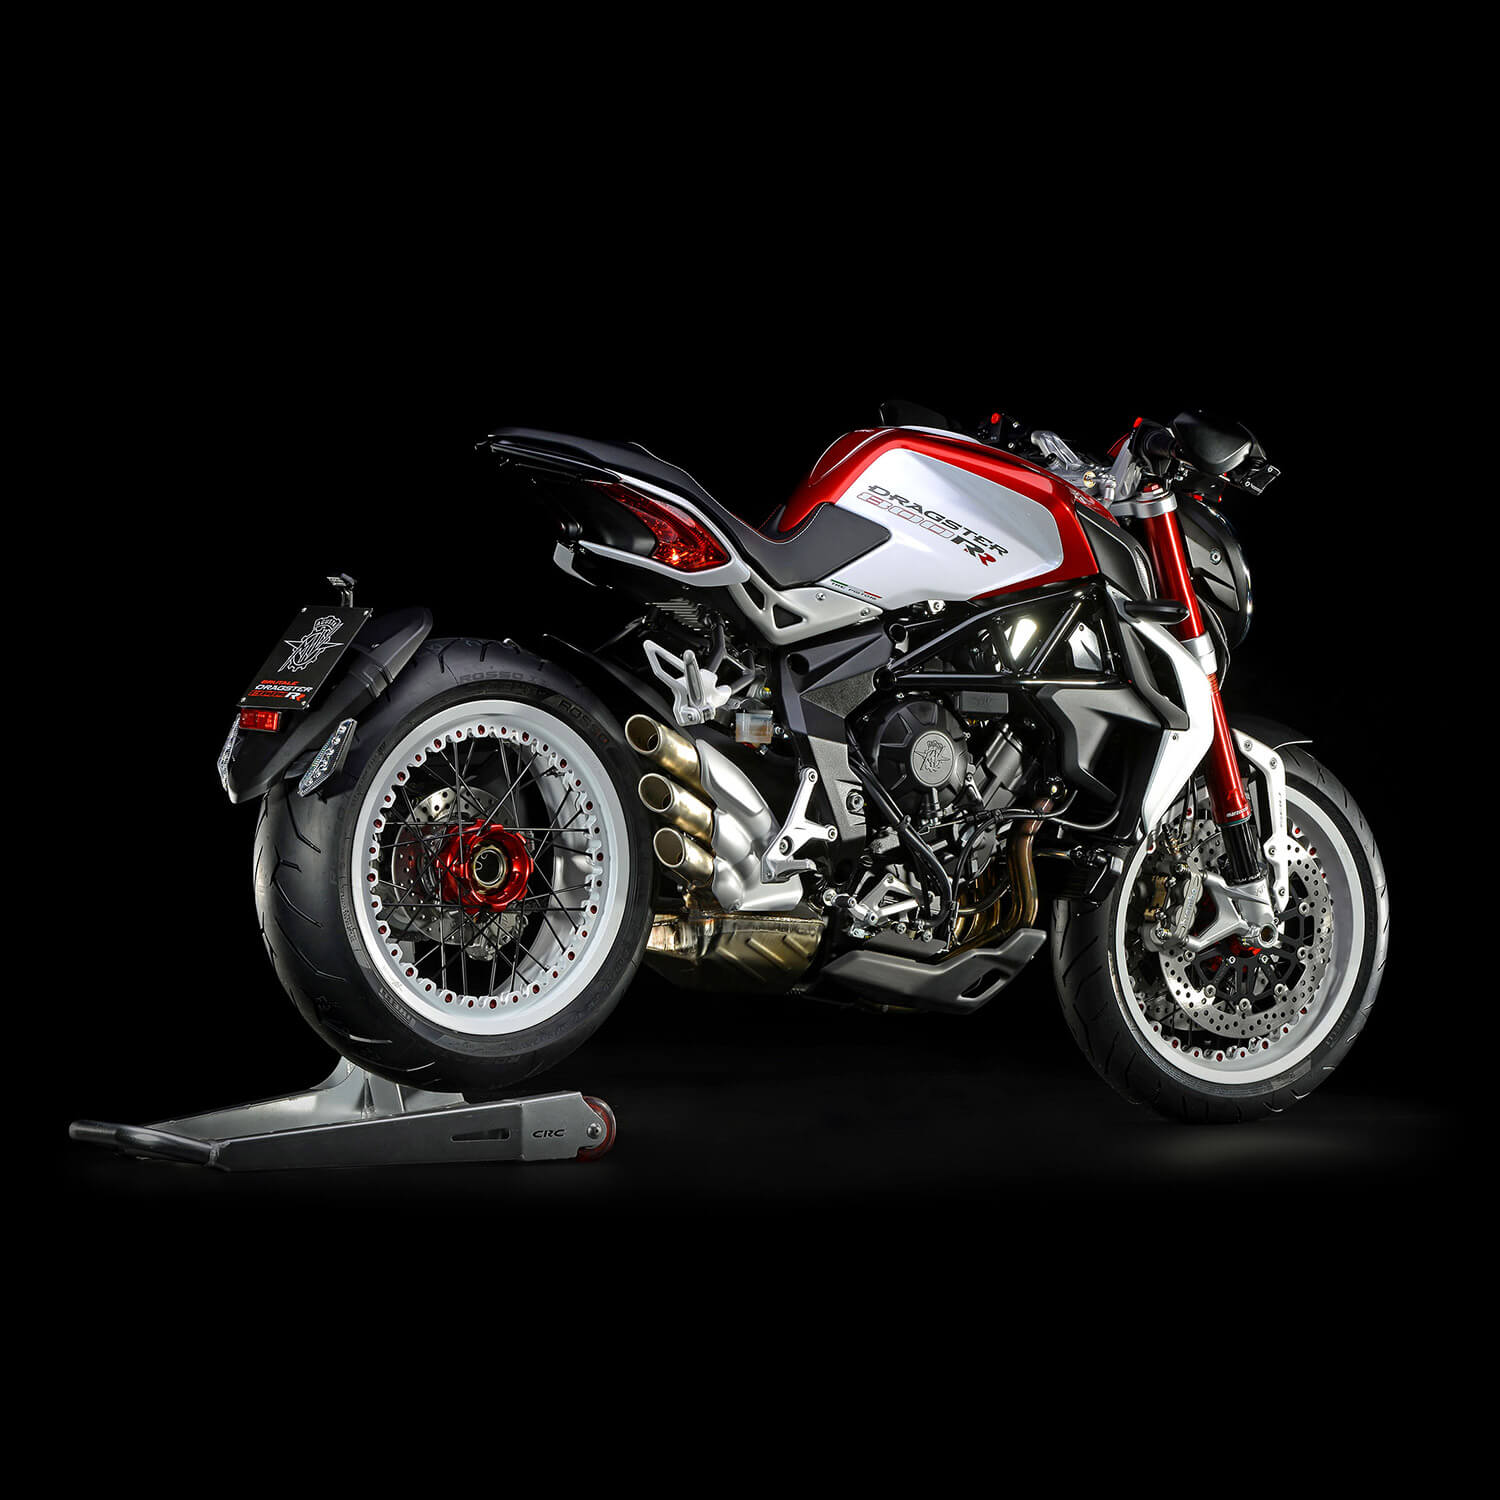 mv agusta dragster 800 rr city moto benelux. Black Bedroom Furniture Sets. Home Design Ideas